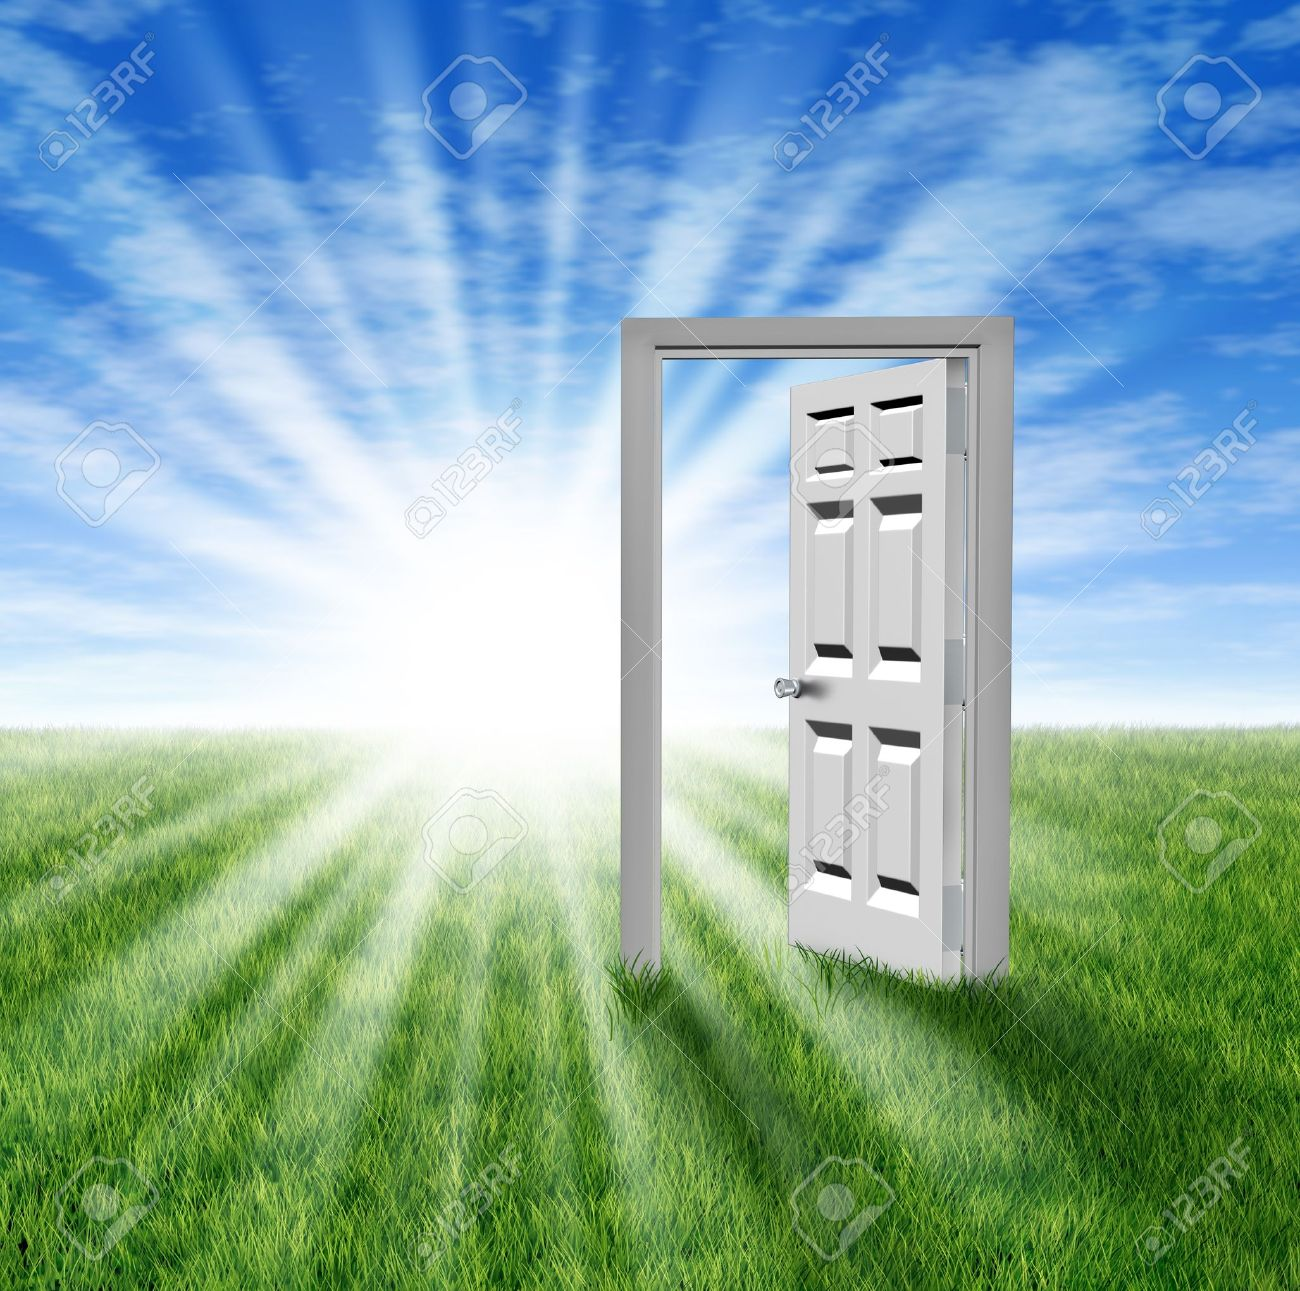 Goals and aspirations as a door to opportunity with a grass field  and an open doorway entrance to success and freedom showing a glowing light of hope and prosperity for the future or an icon for retirement planning. Stock Photo - 12353906